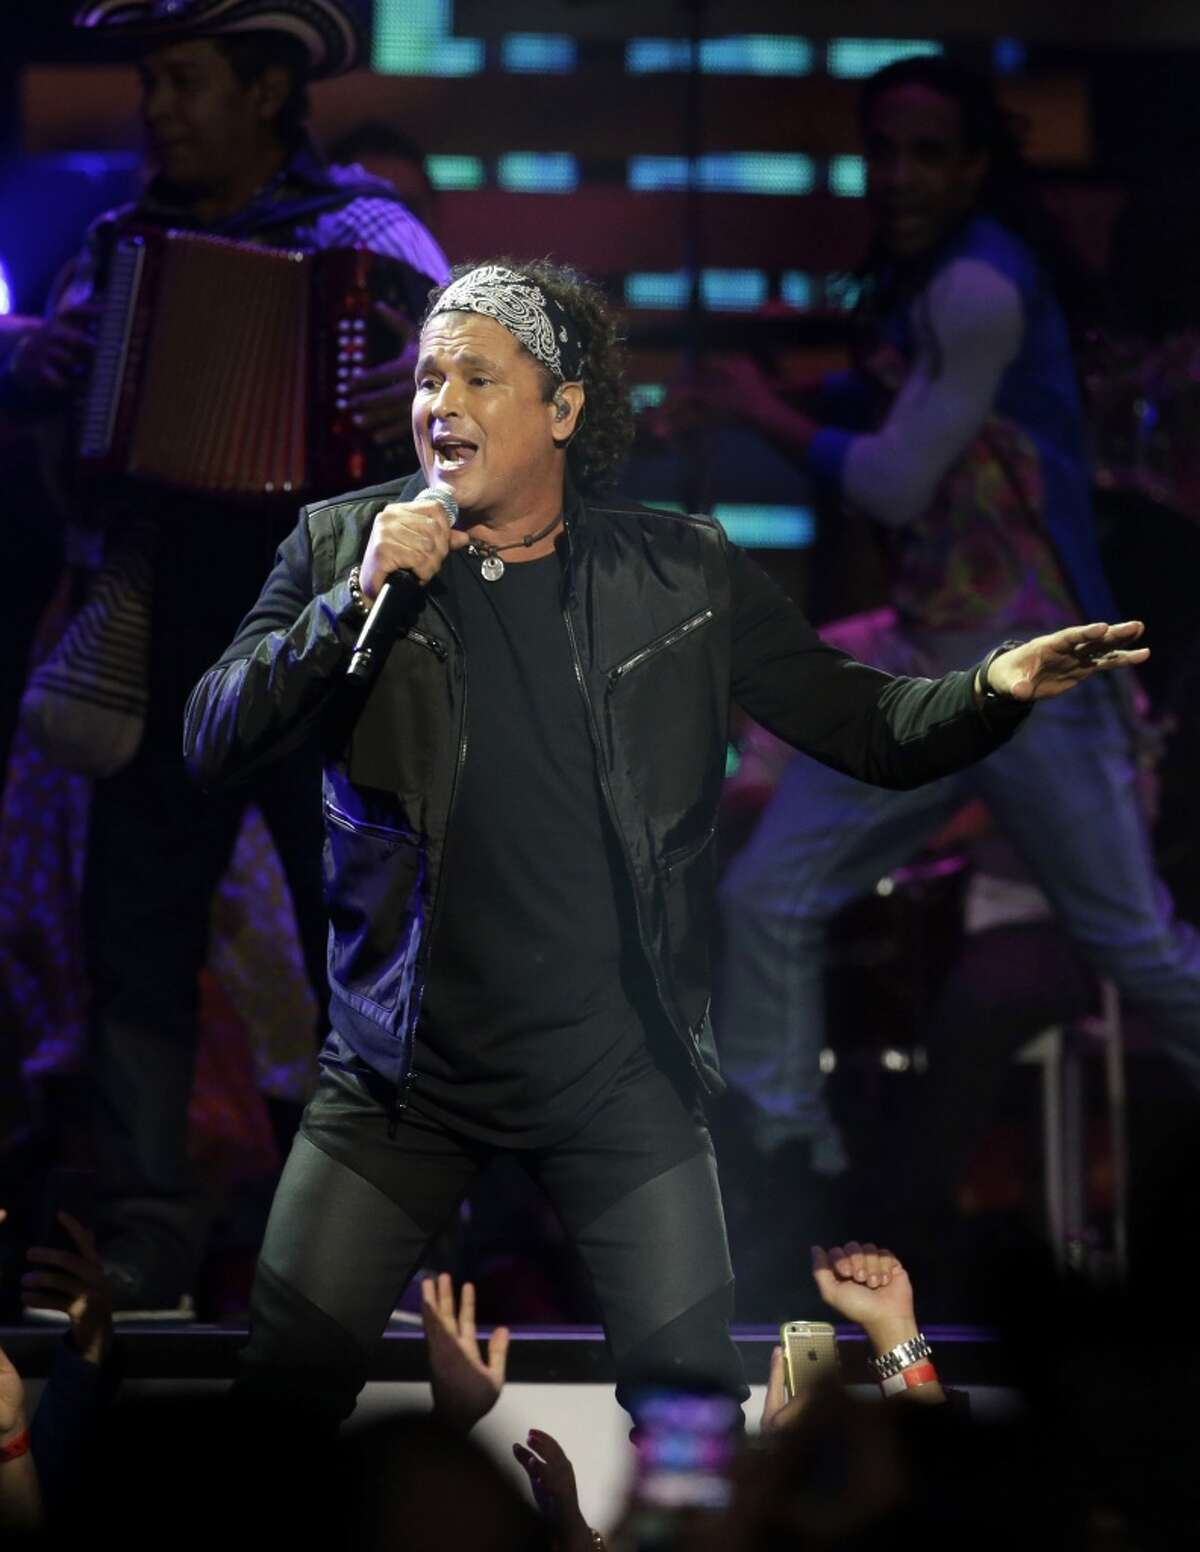 Carlos Vives at the Toyota Center in Houston, whe sang with Marc Anthony.